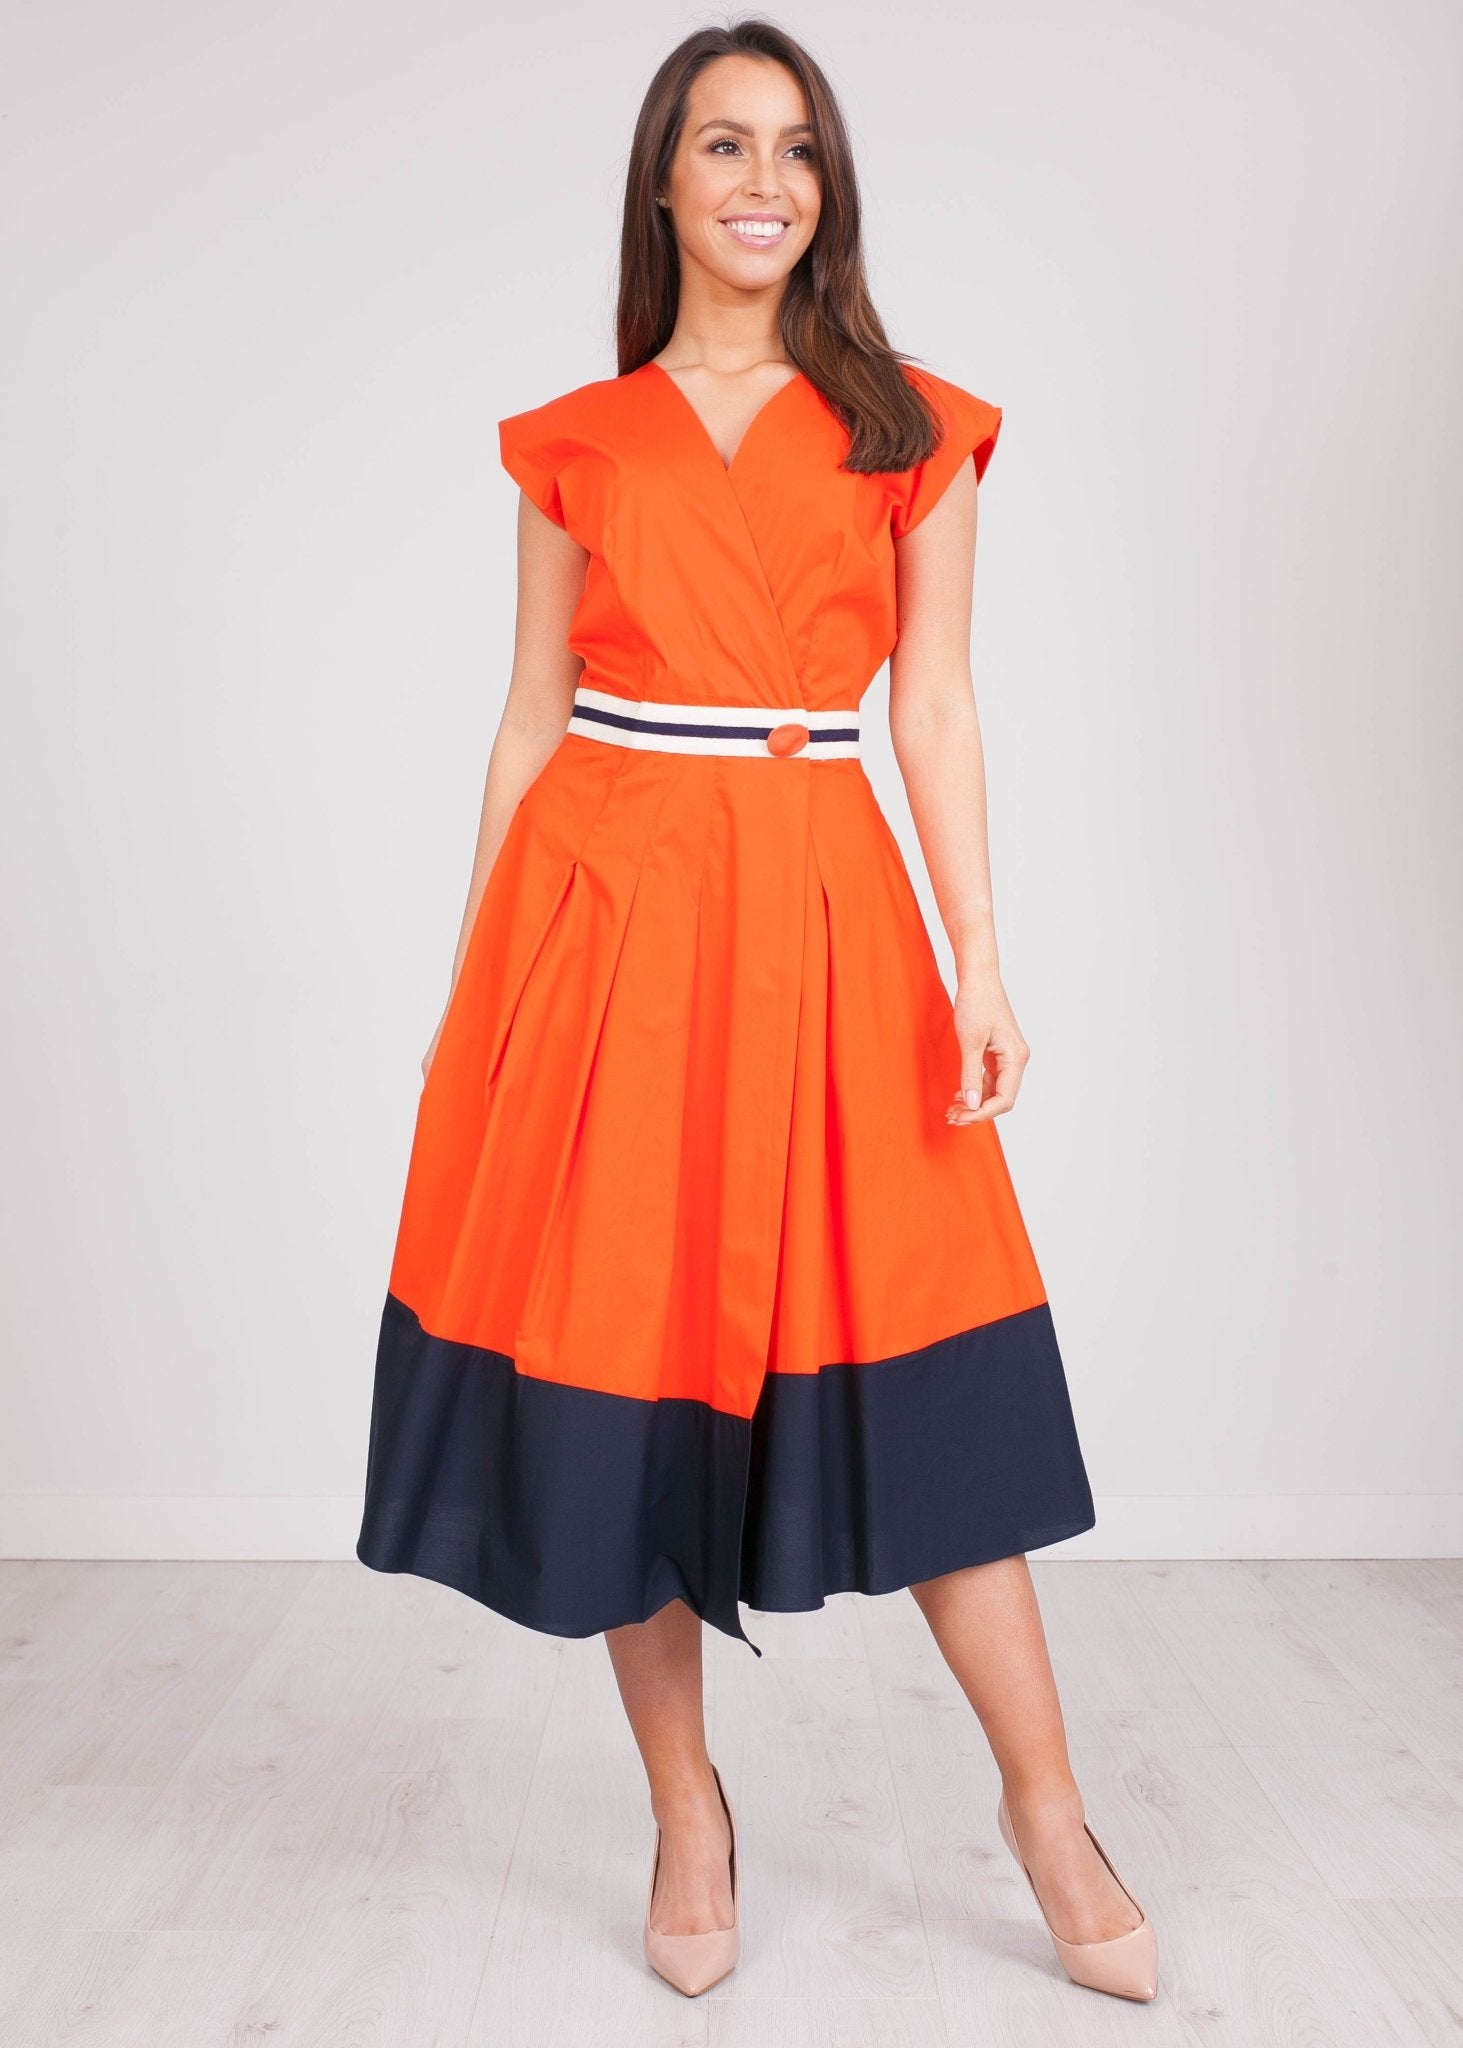 Savannah Block Colour Dress - The Walk in Wardrobe